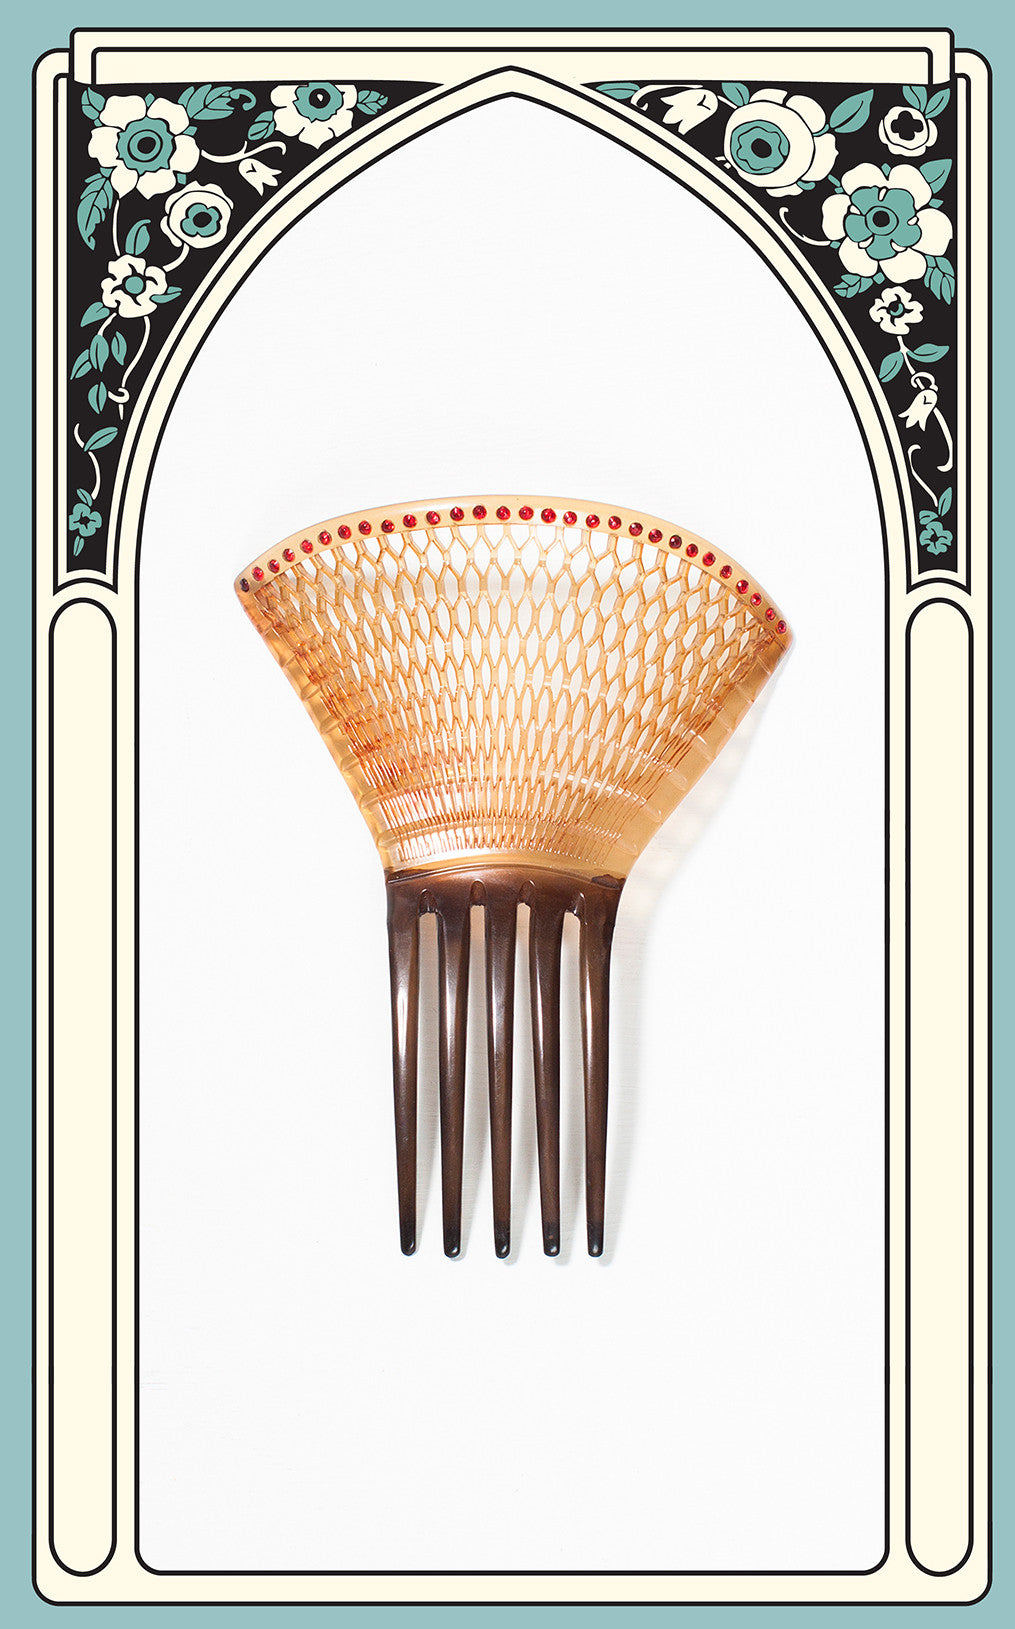 1920s Curved Celluloid Hair Comb with Woven Design and Red Paste Rhinestones